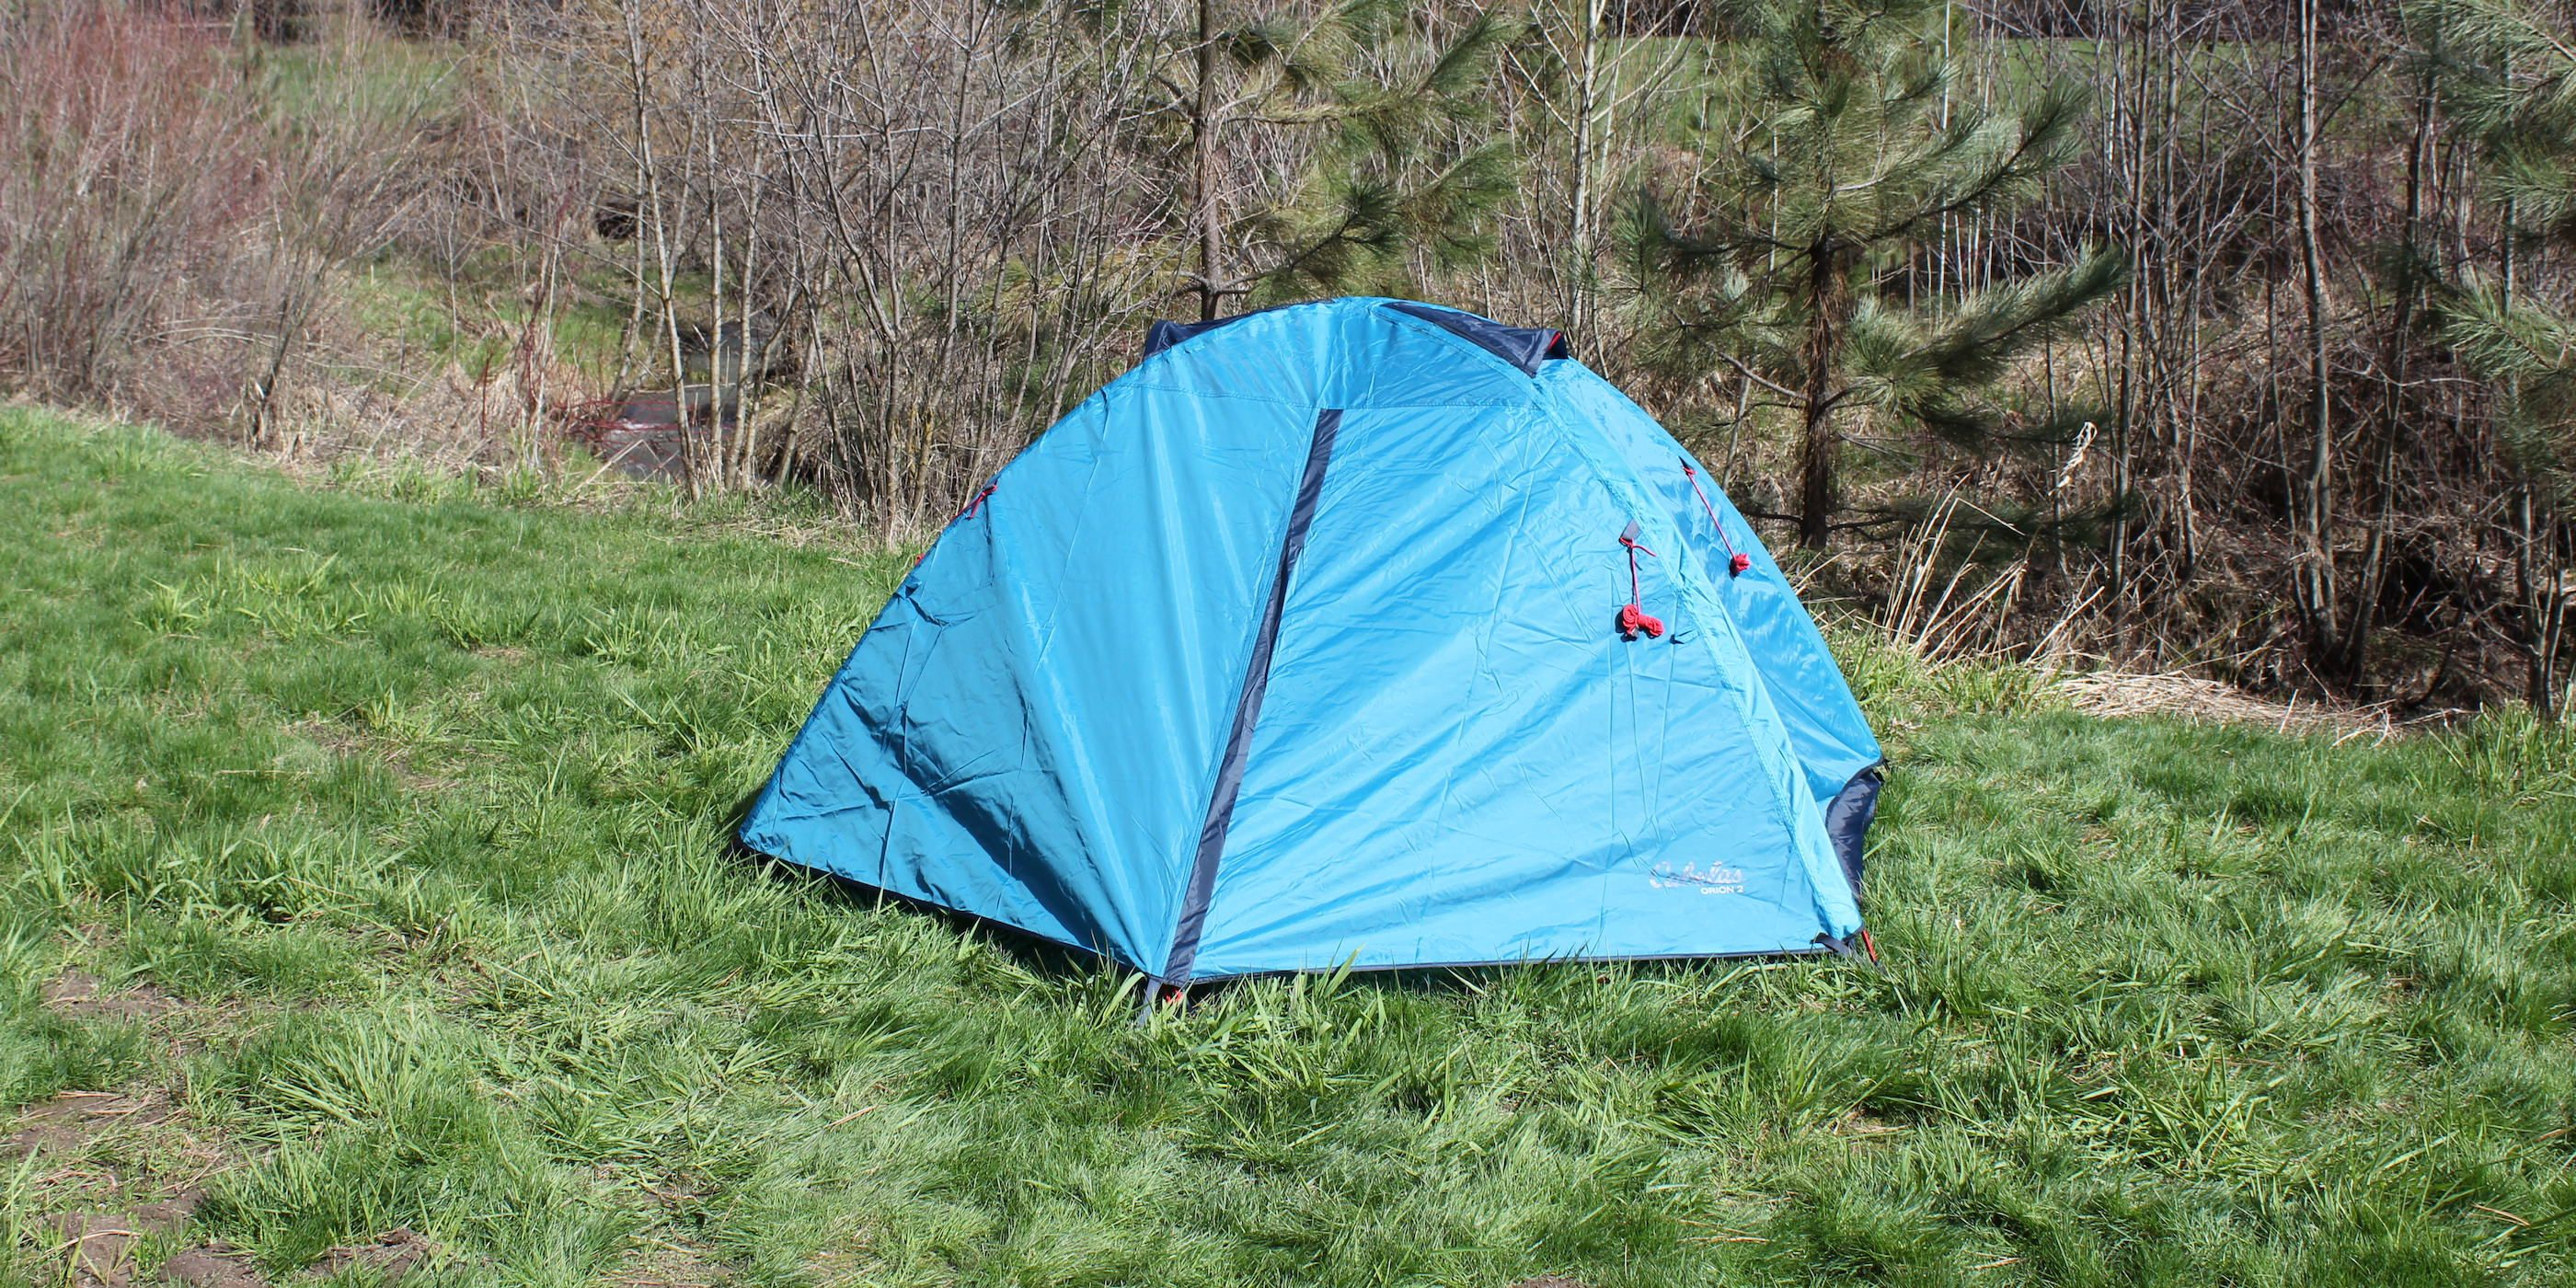 Cabelau0027s Orion Backpacker Tent Review & Cabelau0027s Orion Backpacker Tent Review | Backpacking Gift Ideas ...